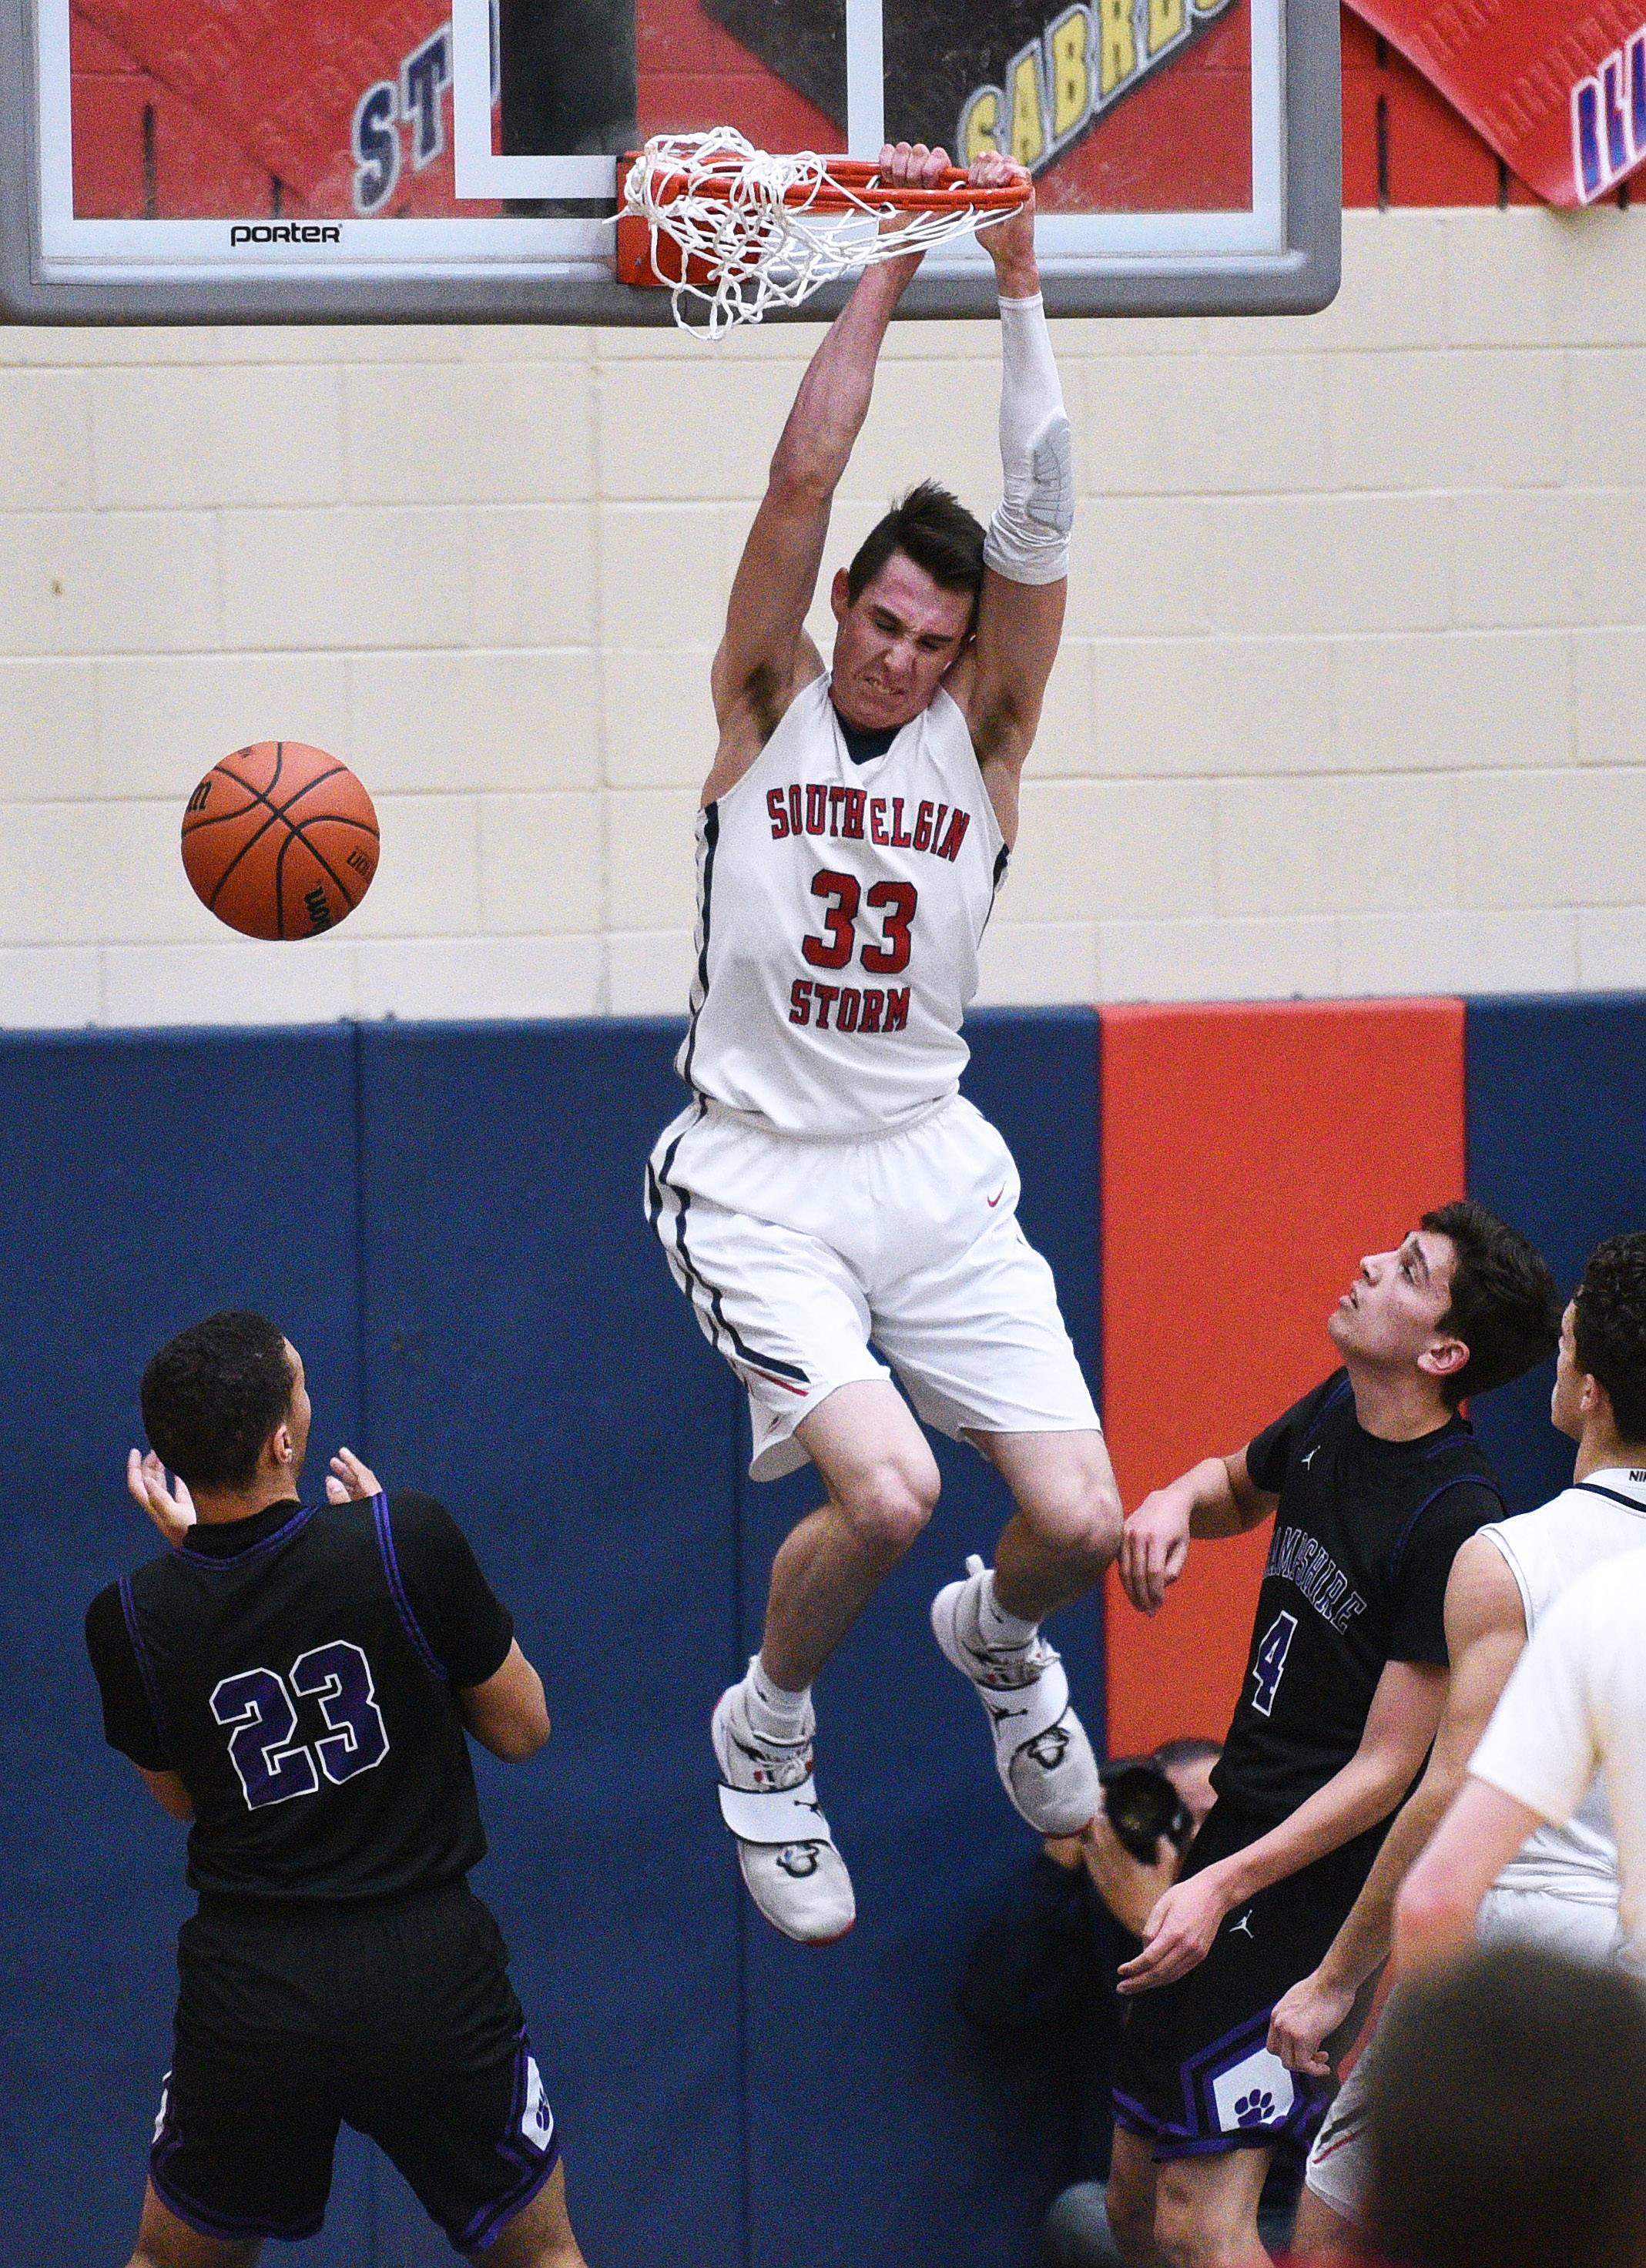 South Elgin's Vincent Miszkiewicz (33) hangs on the rim after a dunk as Hampshire's AJ Bishop (23) and Kyle Johnson (4) look on during Wednesday's Class 4A regional semifinal boys basketball game in South Elgin.